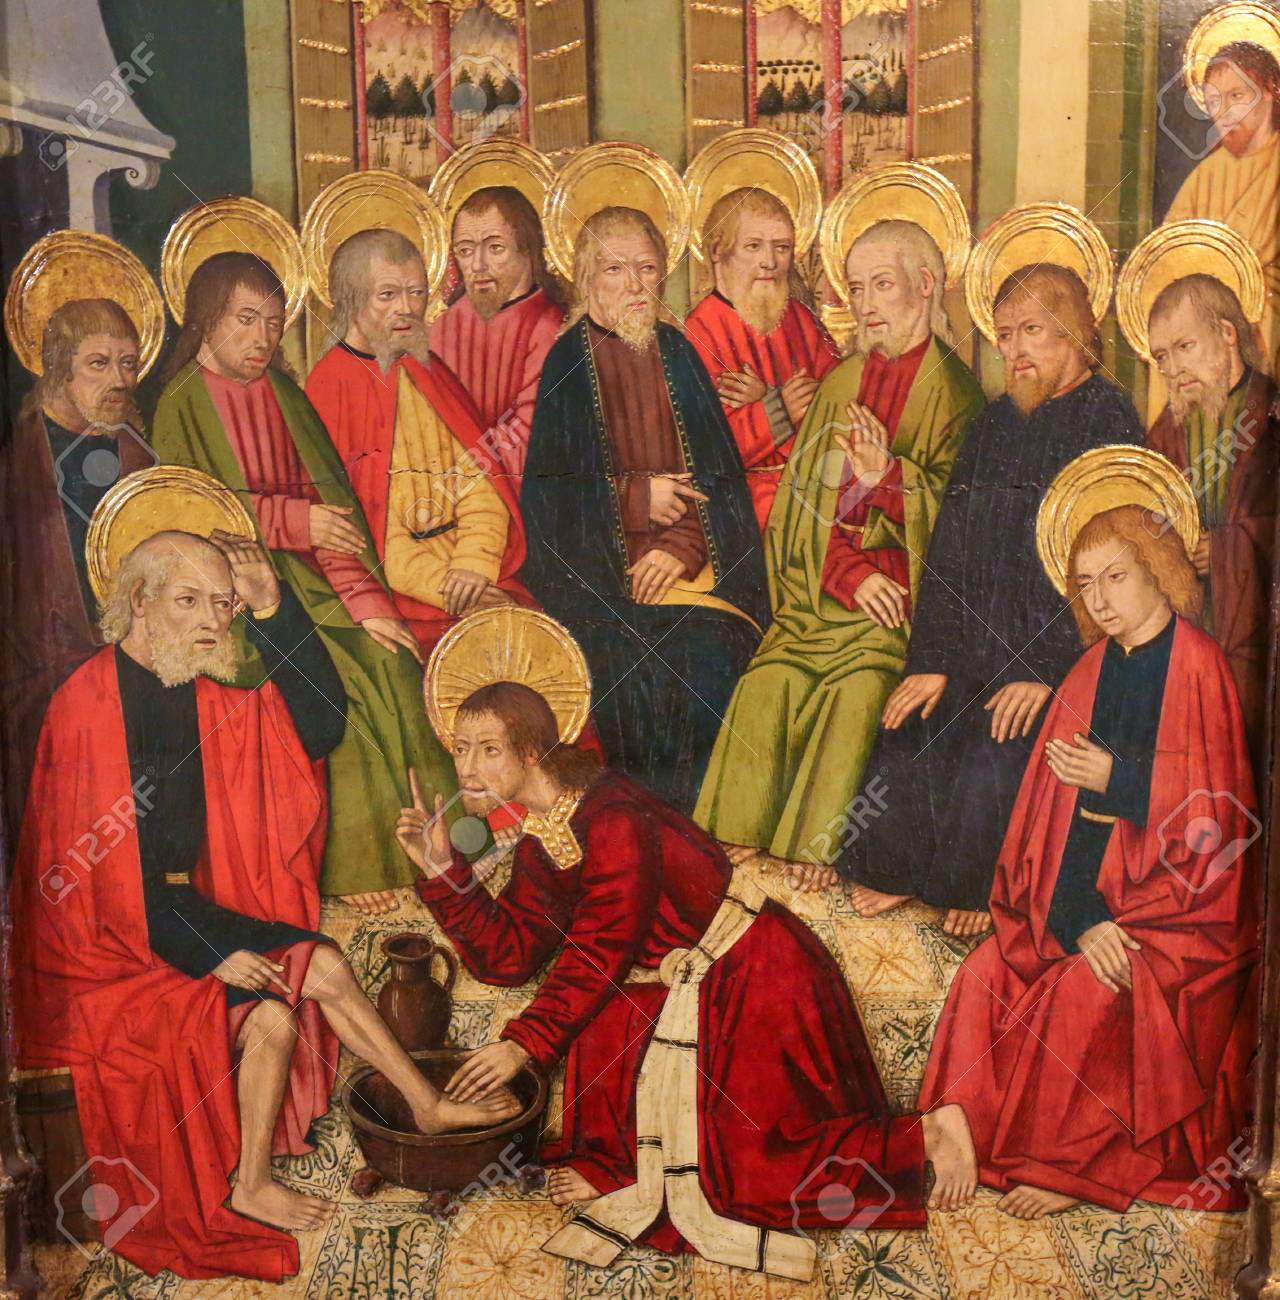 Painting of Jesus Christ washing the Feet of the Apostles at the Last Supper, in the Church of Valencia, Spain - 111725884